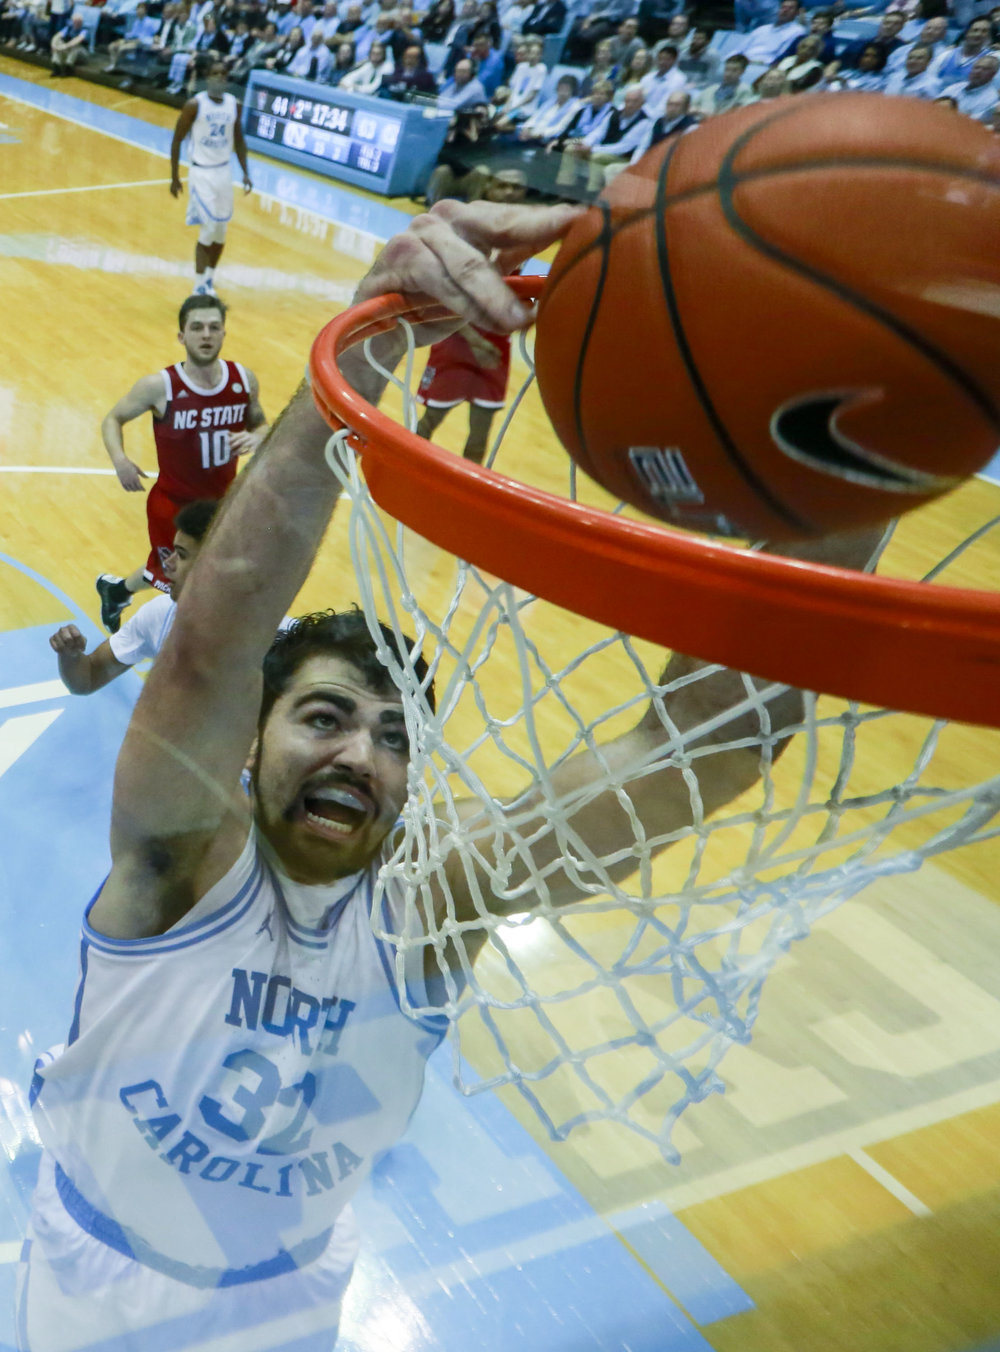 Noted Wolfpack killer Luke Maye dunks home two of his 31 points against N.C. State. The senior forward has averaged 29.0 points and 13.0 rebounds against the Wolfpack the last two years. | Photo by Alex Kormann